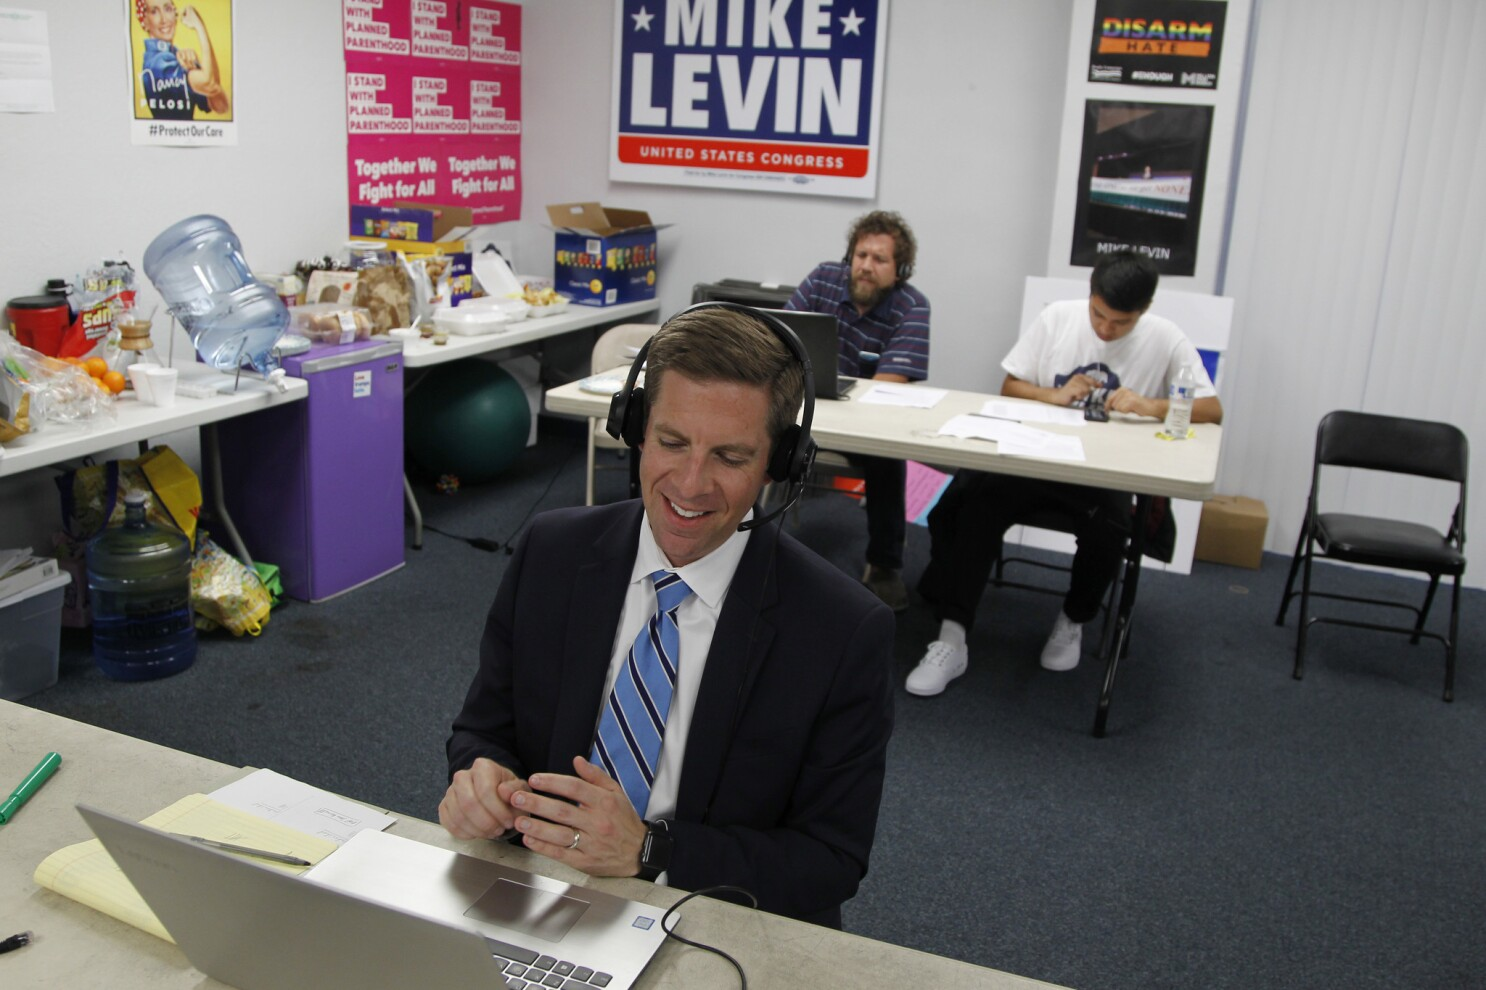 Rep. Mike Levin raises twice as much as opponent, Brian Maryott, during 3rd quarter